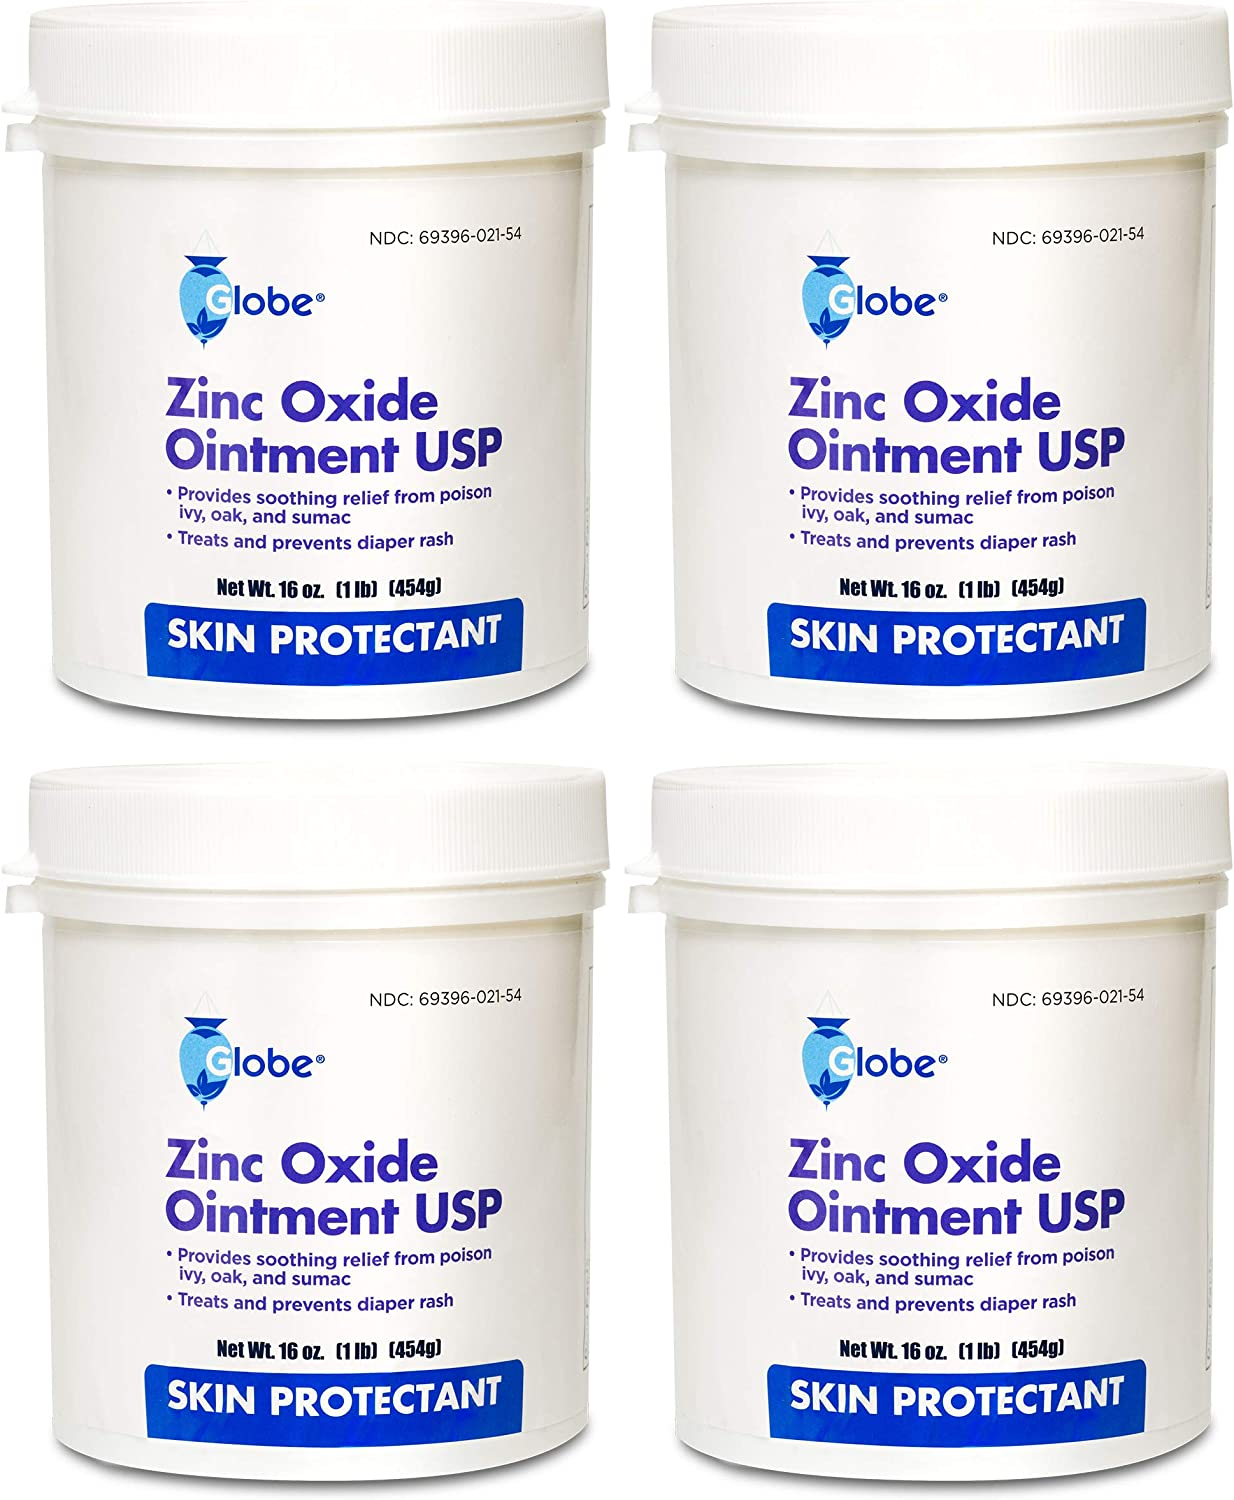 Zinc Oxide Ointment by GLOBE Max 76% OFF - 1 4 Lb Complete Free Shipping Pack